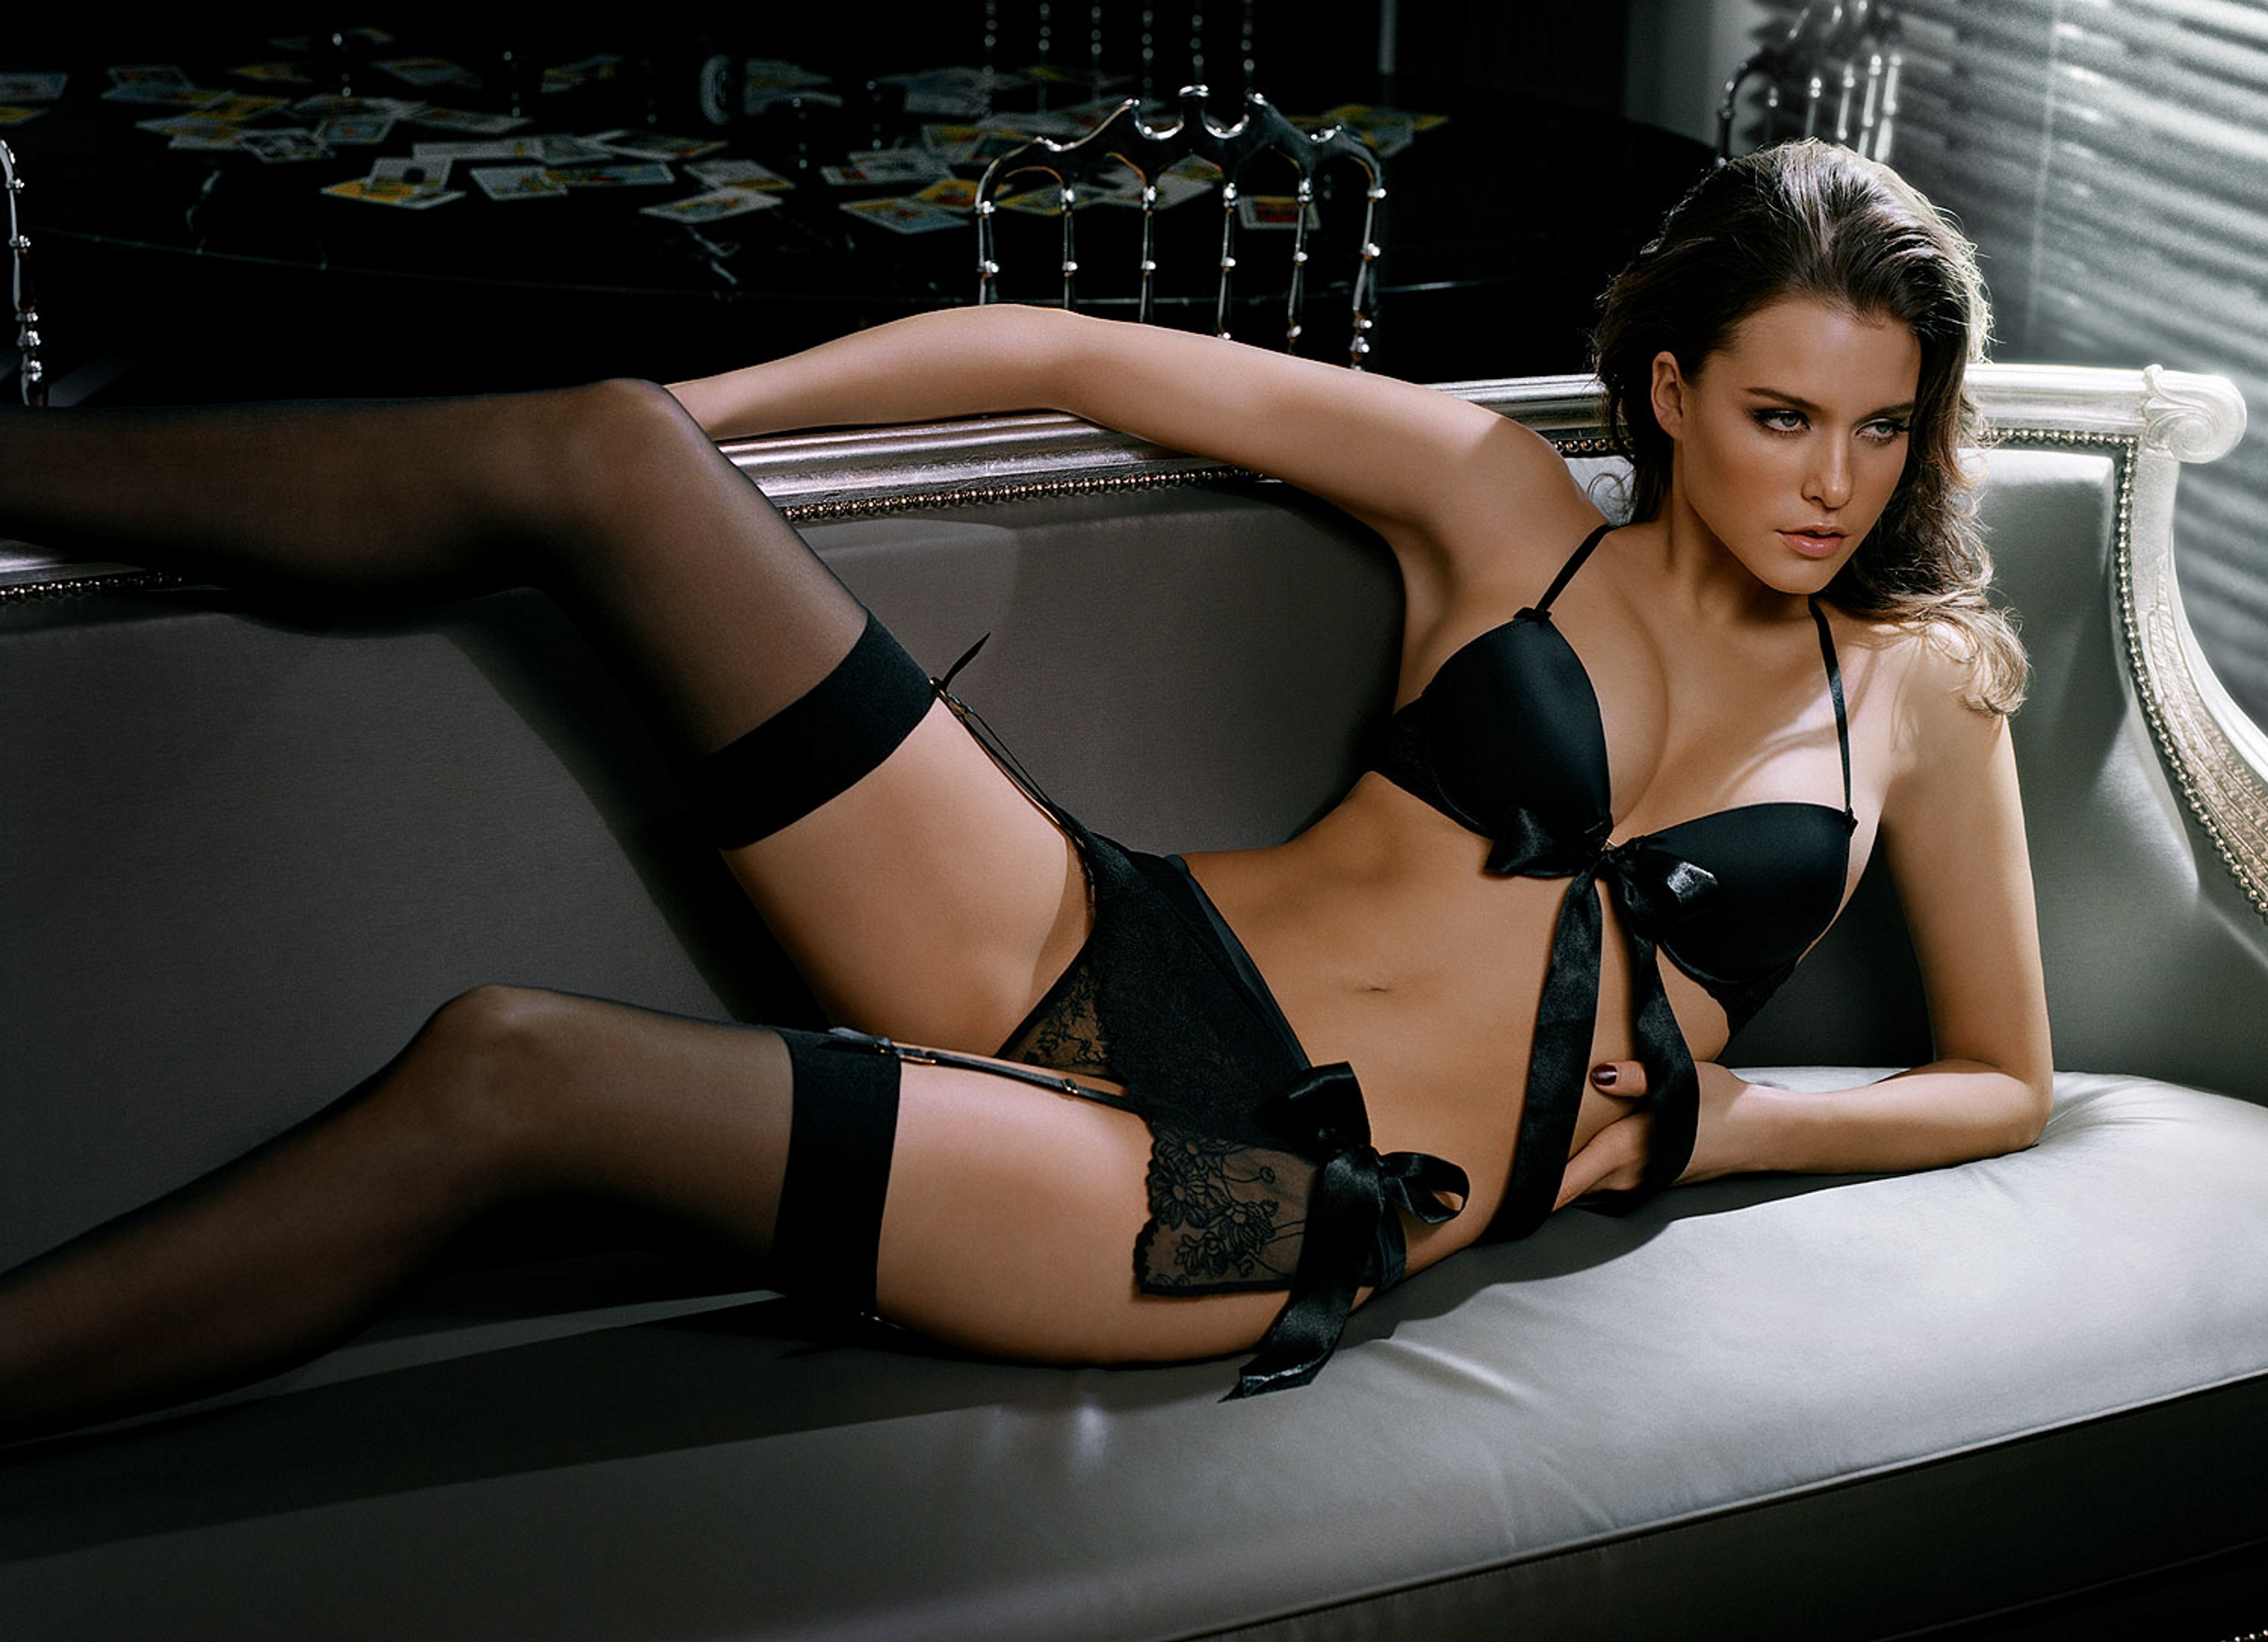 Sex Product For Women Sexy Lingerie Black Lace Stockings